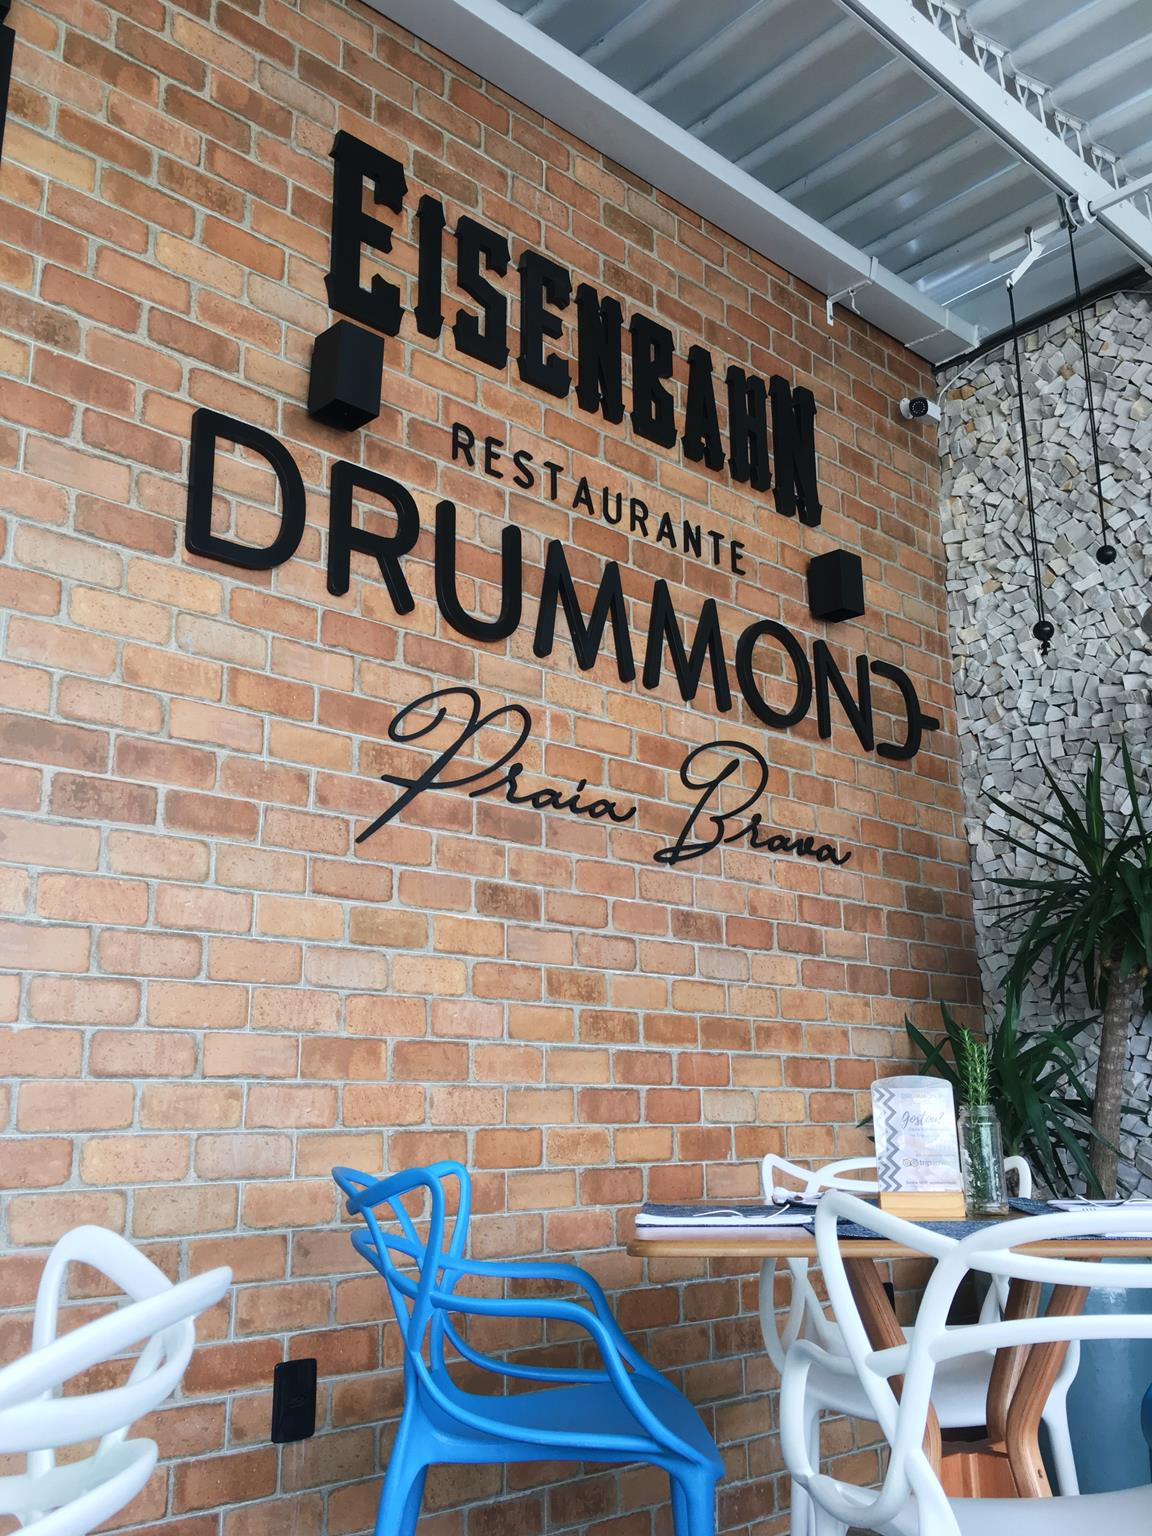 restaurante drummond